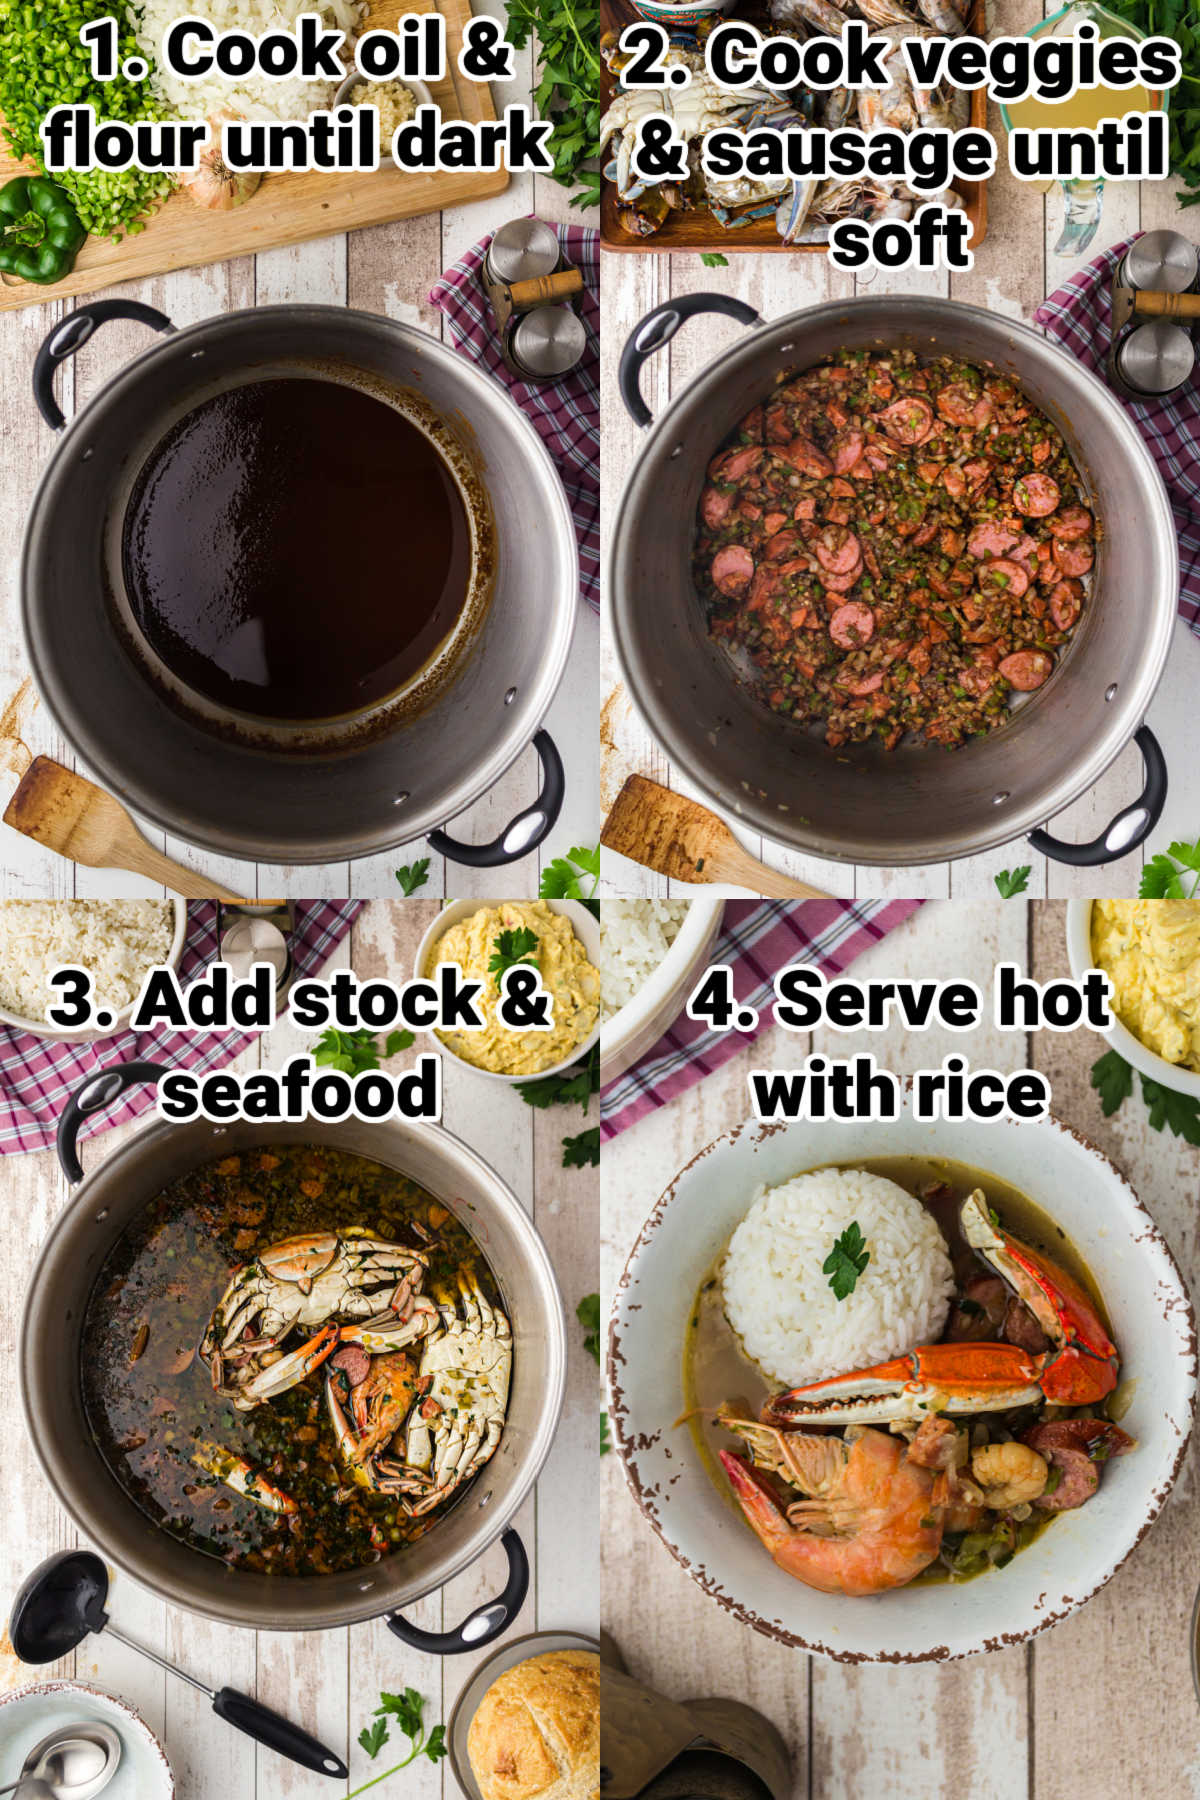 four instructional shots on how to make a seafood gumbo